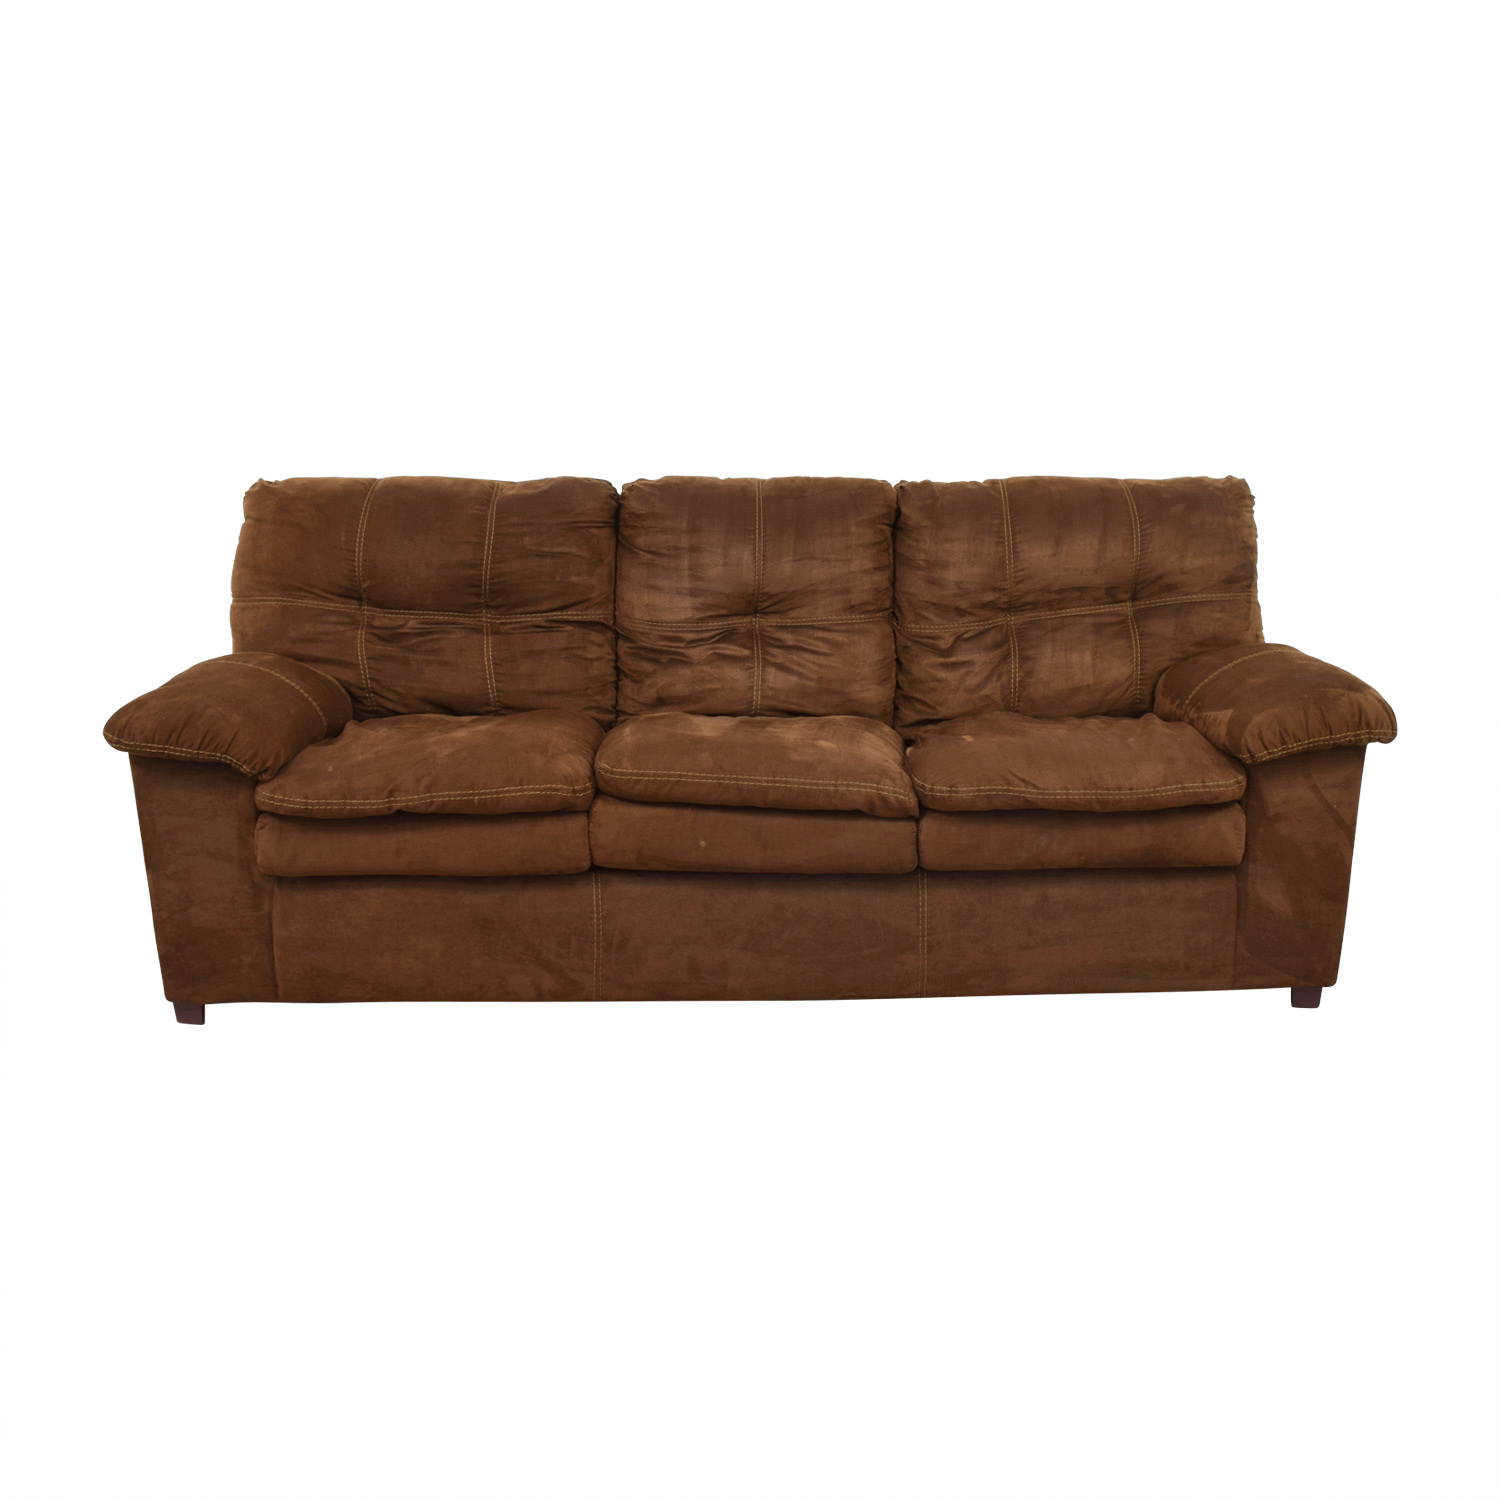 Brown Three-Cushion Pillowed Arms Sofa on sale